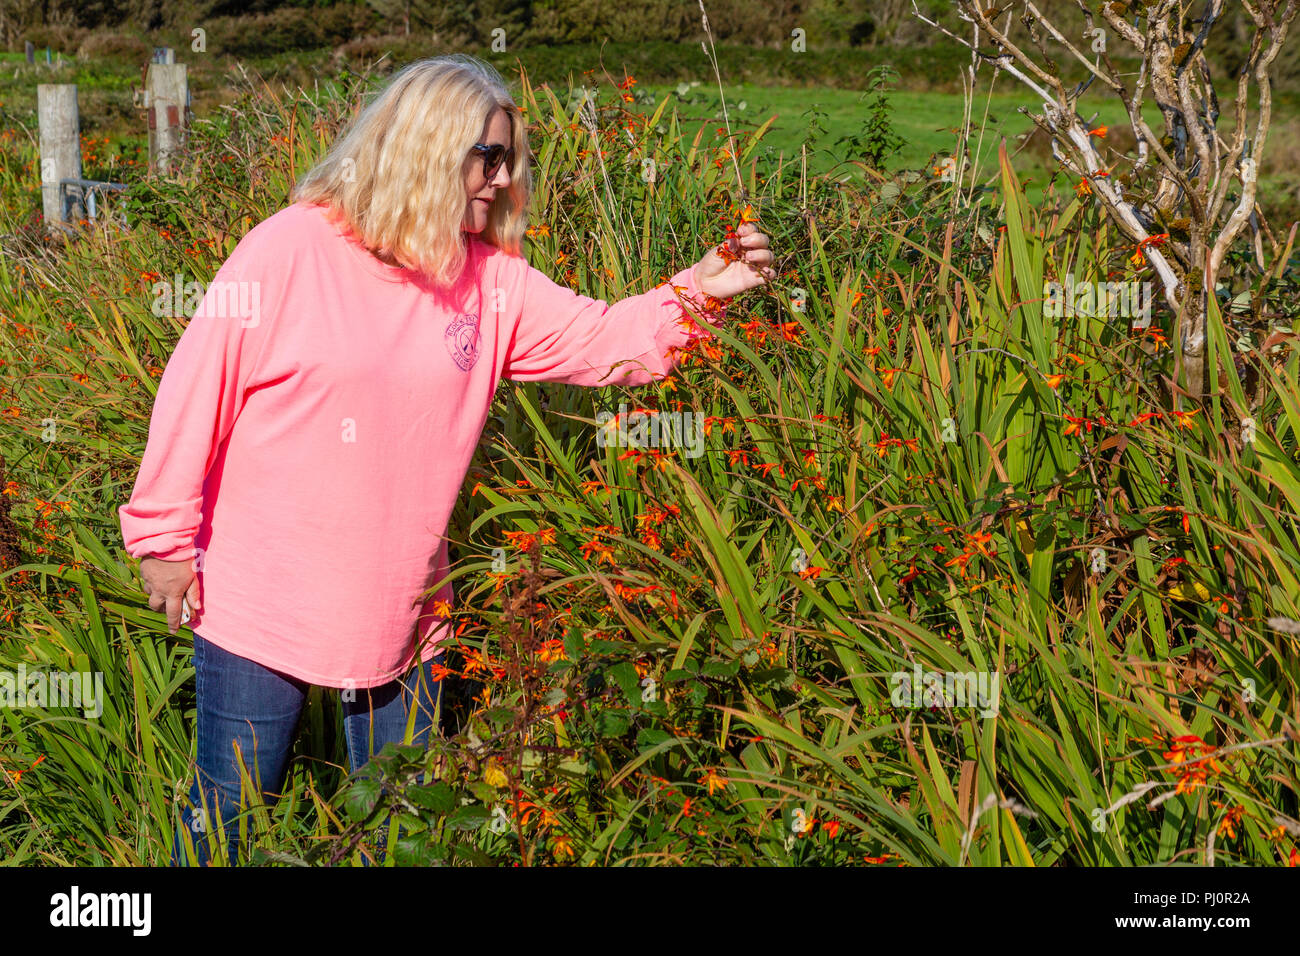 Older blond woman walking in country lane - Stock Image